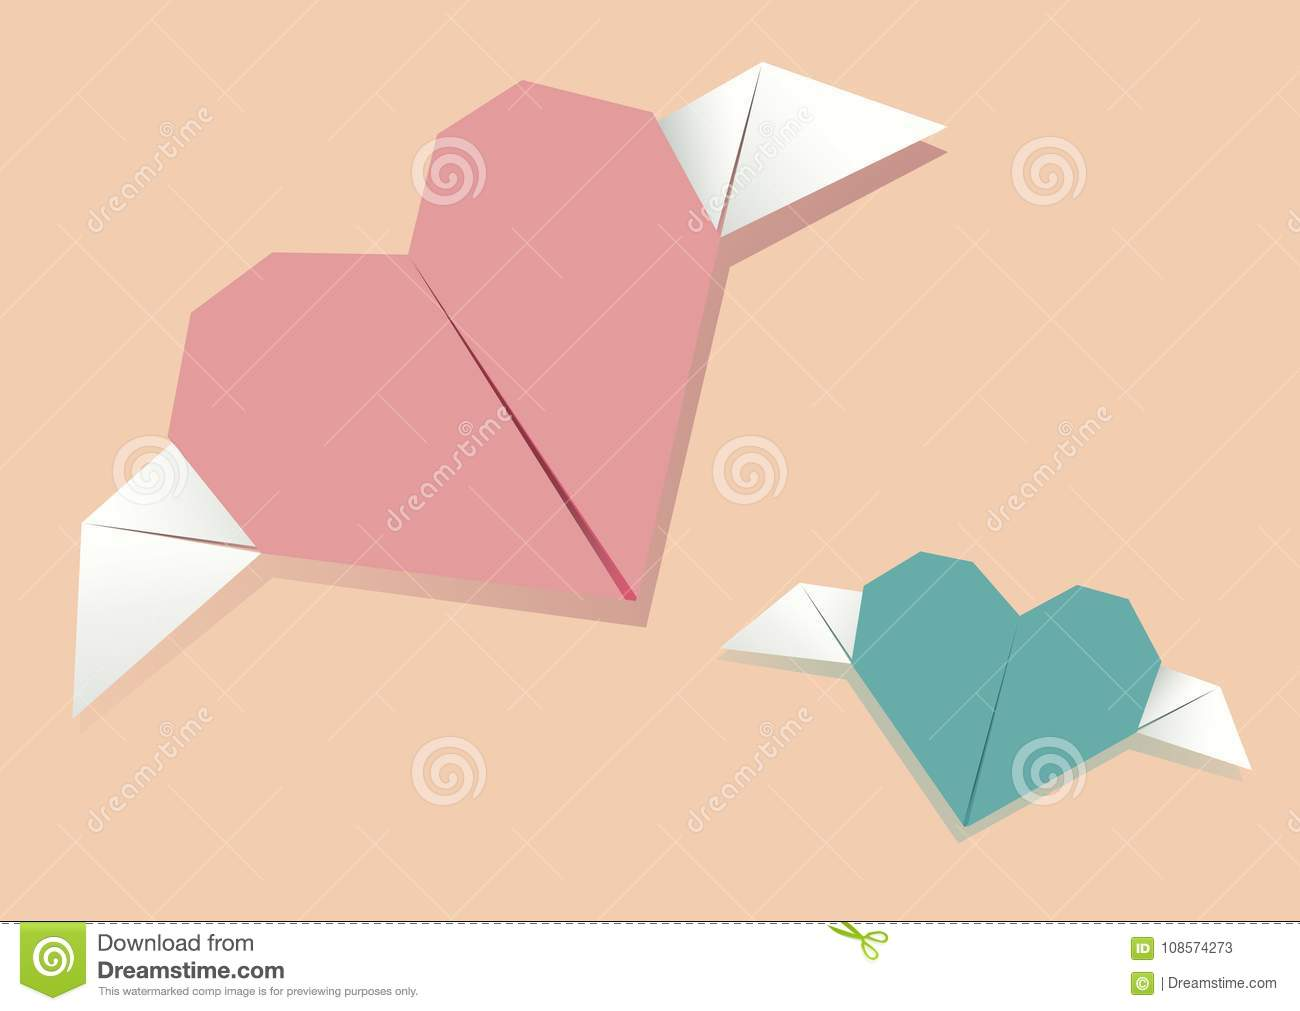 Paper Origami Heart Symbolic Vector Illustration Stock Vector